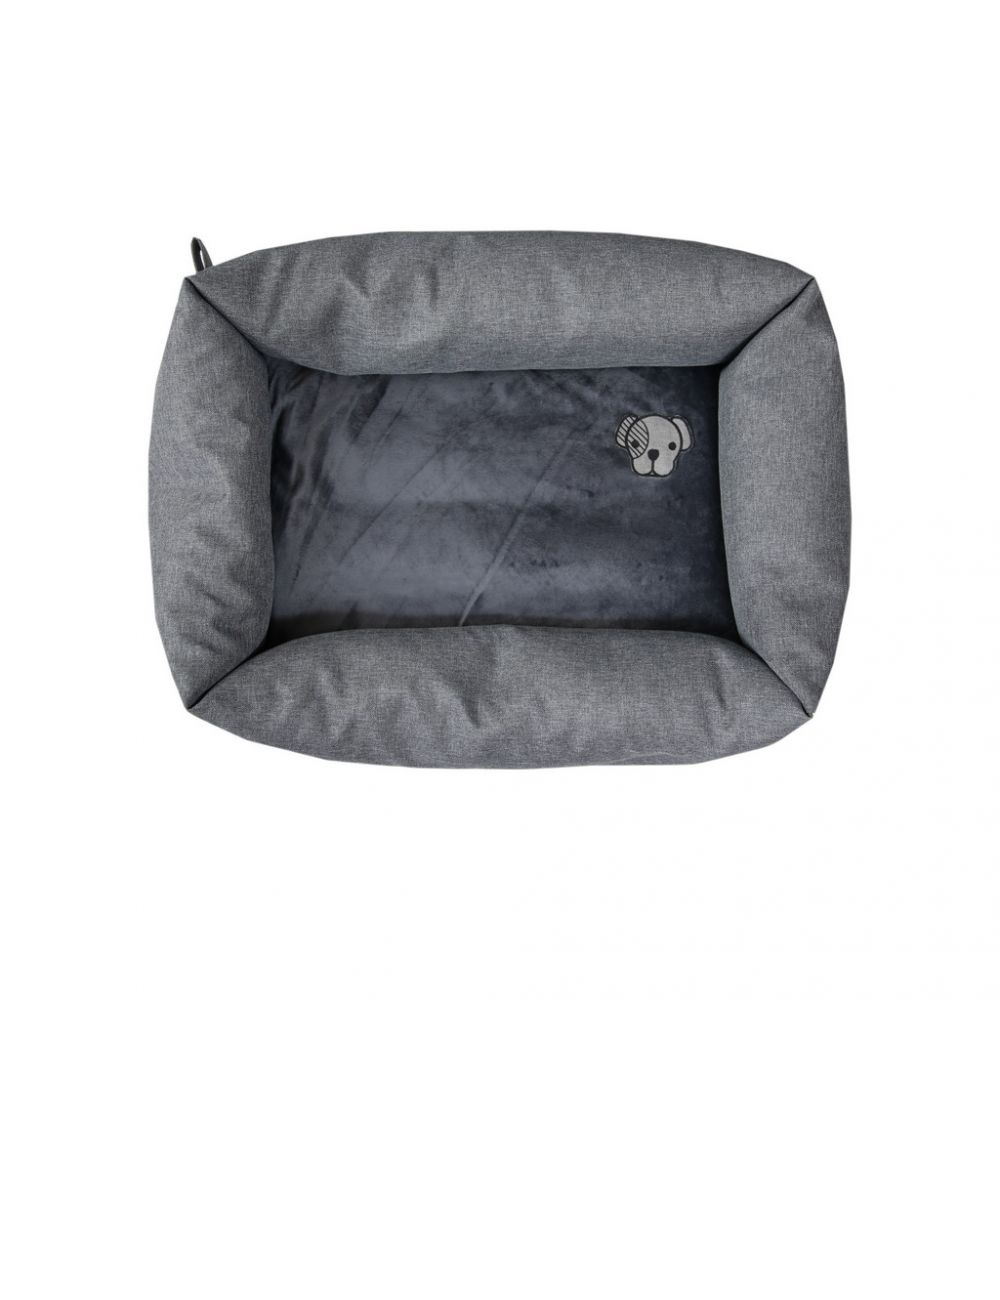 Kentucky Horsewear Dog Bed Soft Sleep - 1